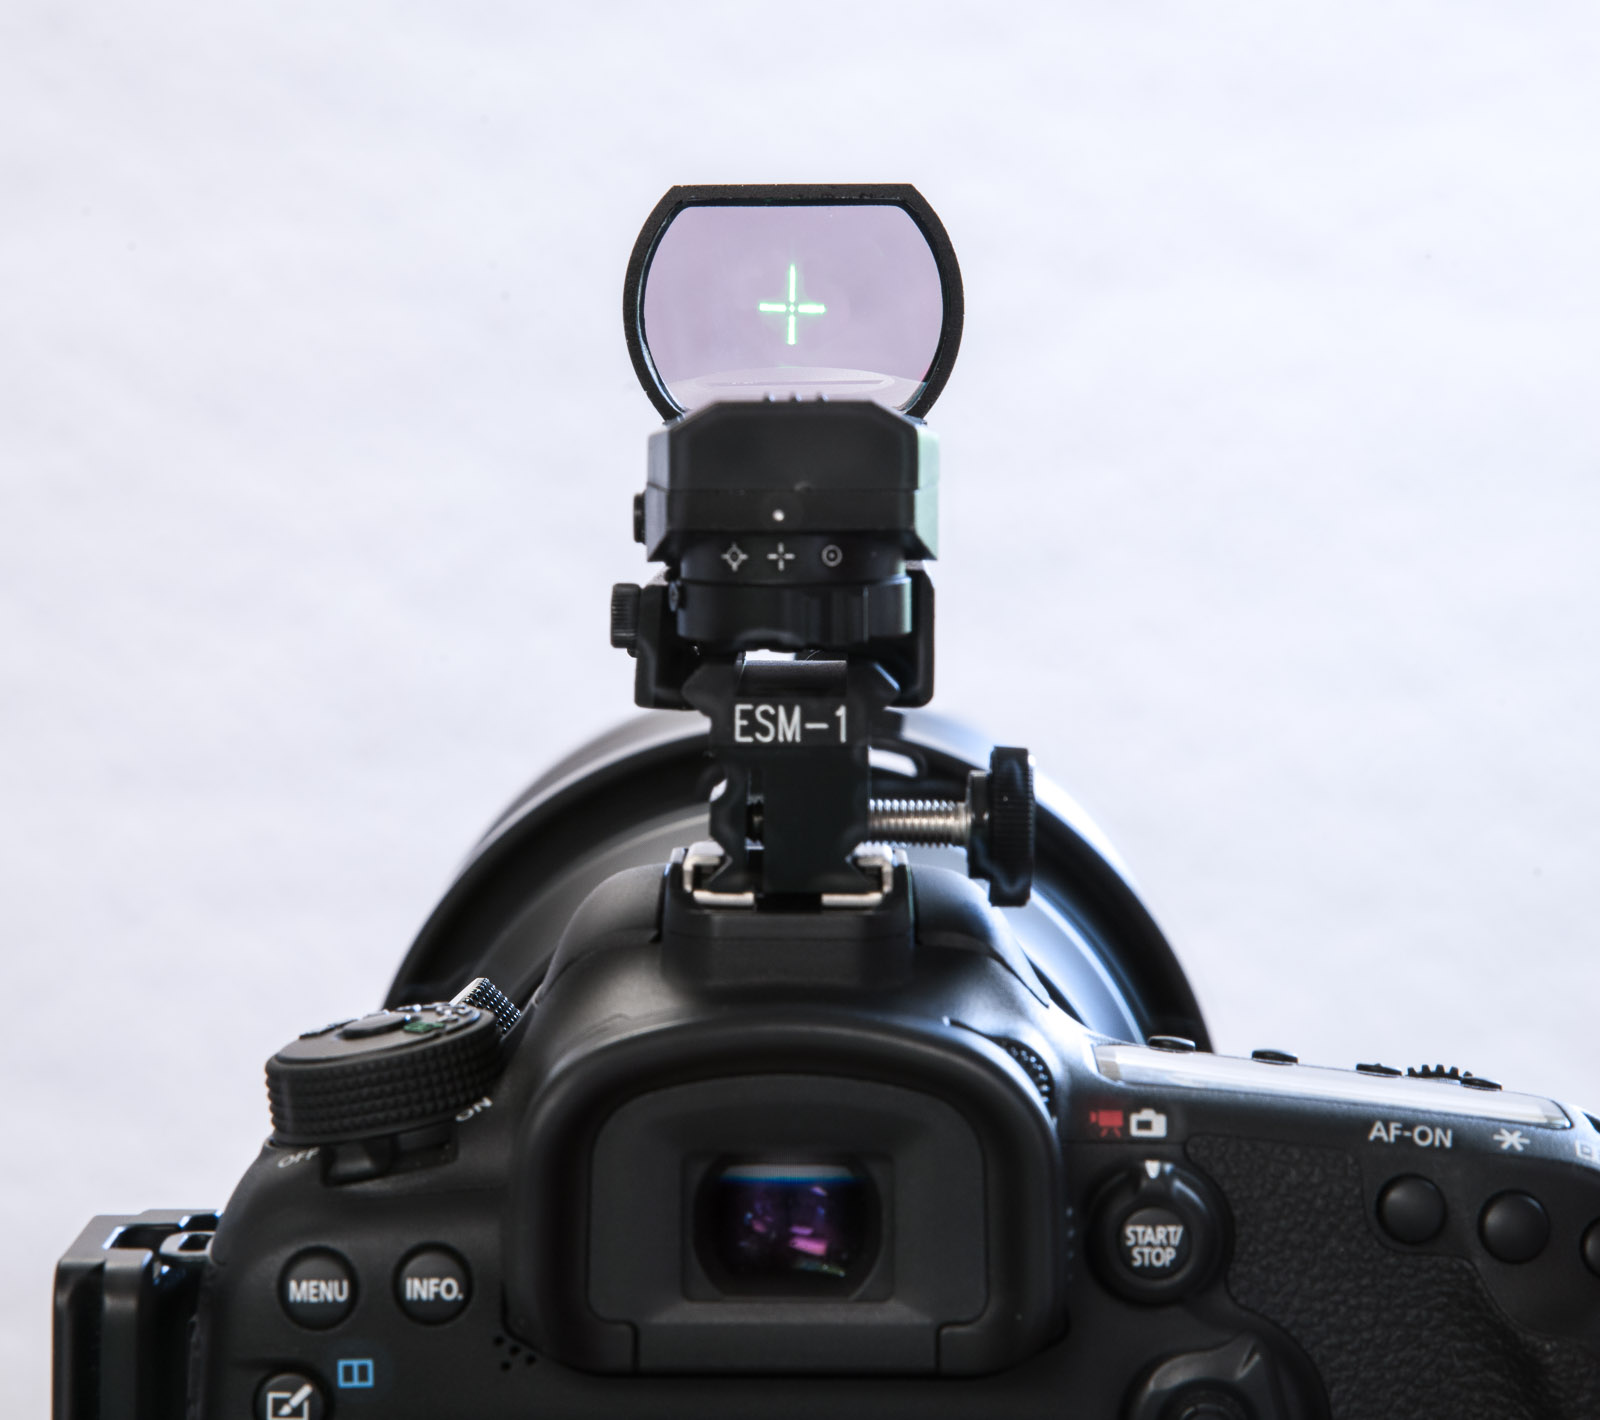 Reticle centered on the Tracker lens